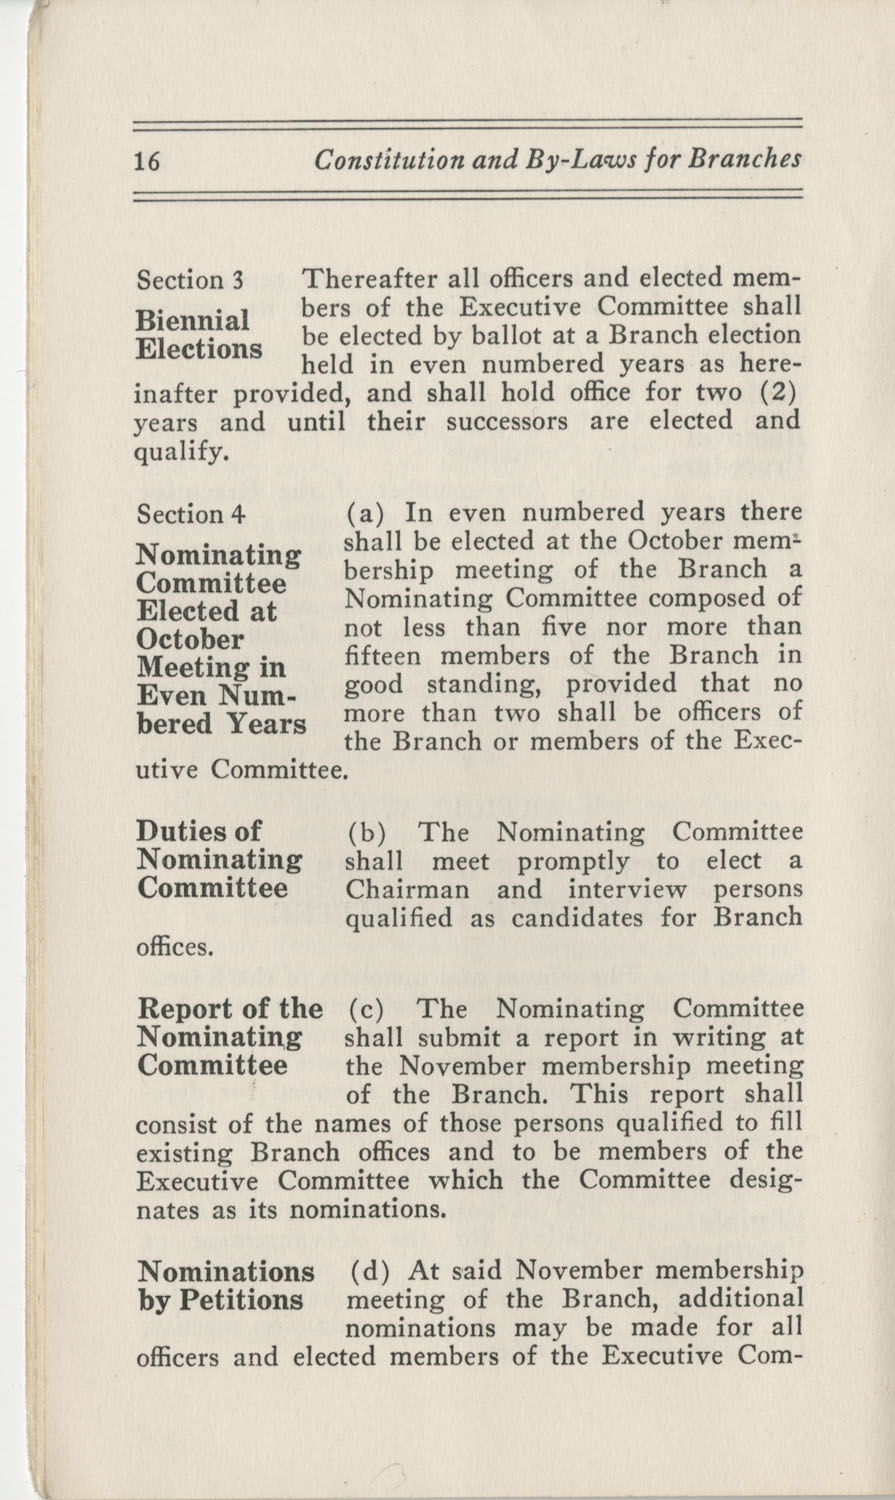 Constitutions and By-Laws, September 1960, Page 16